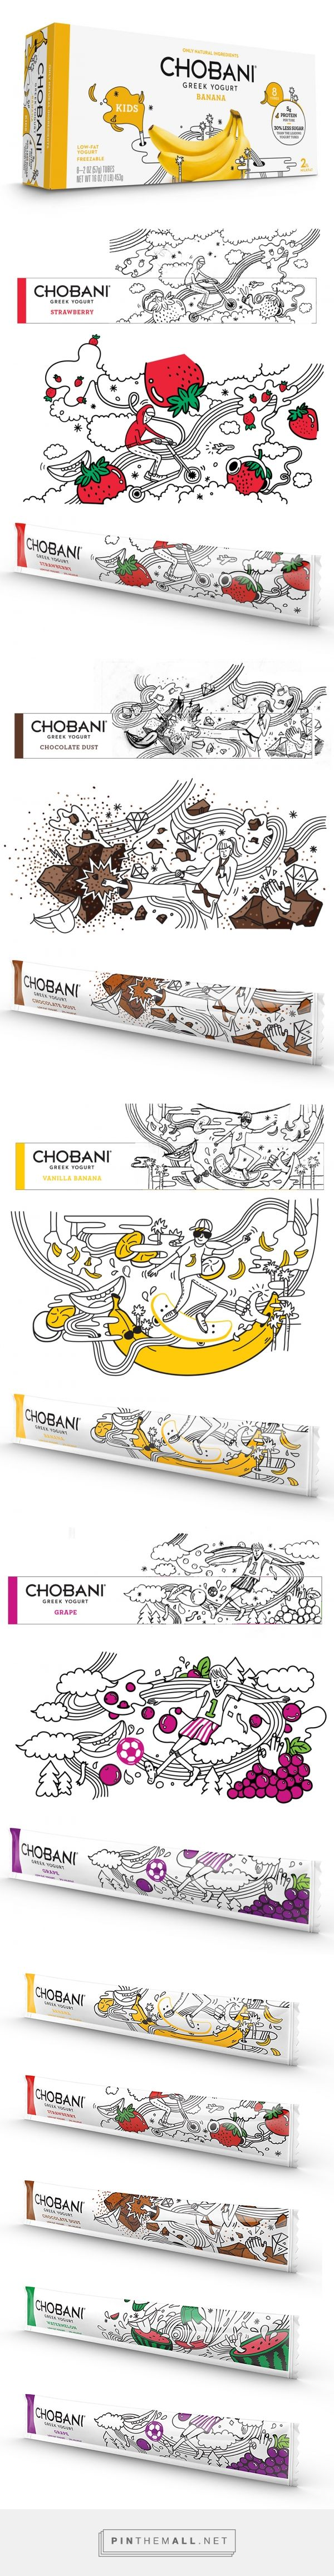 Chobani Yogurt Kids — The Dieline - Branding & Packaging where can I find these!